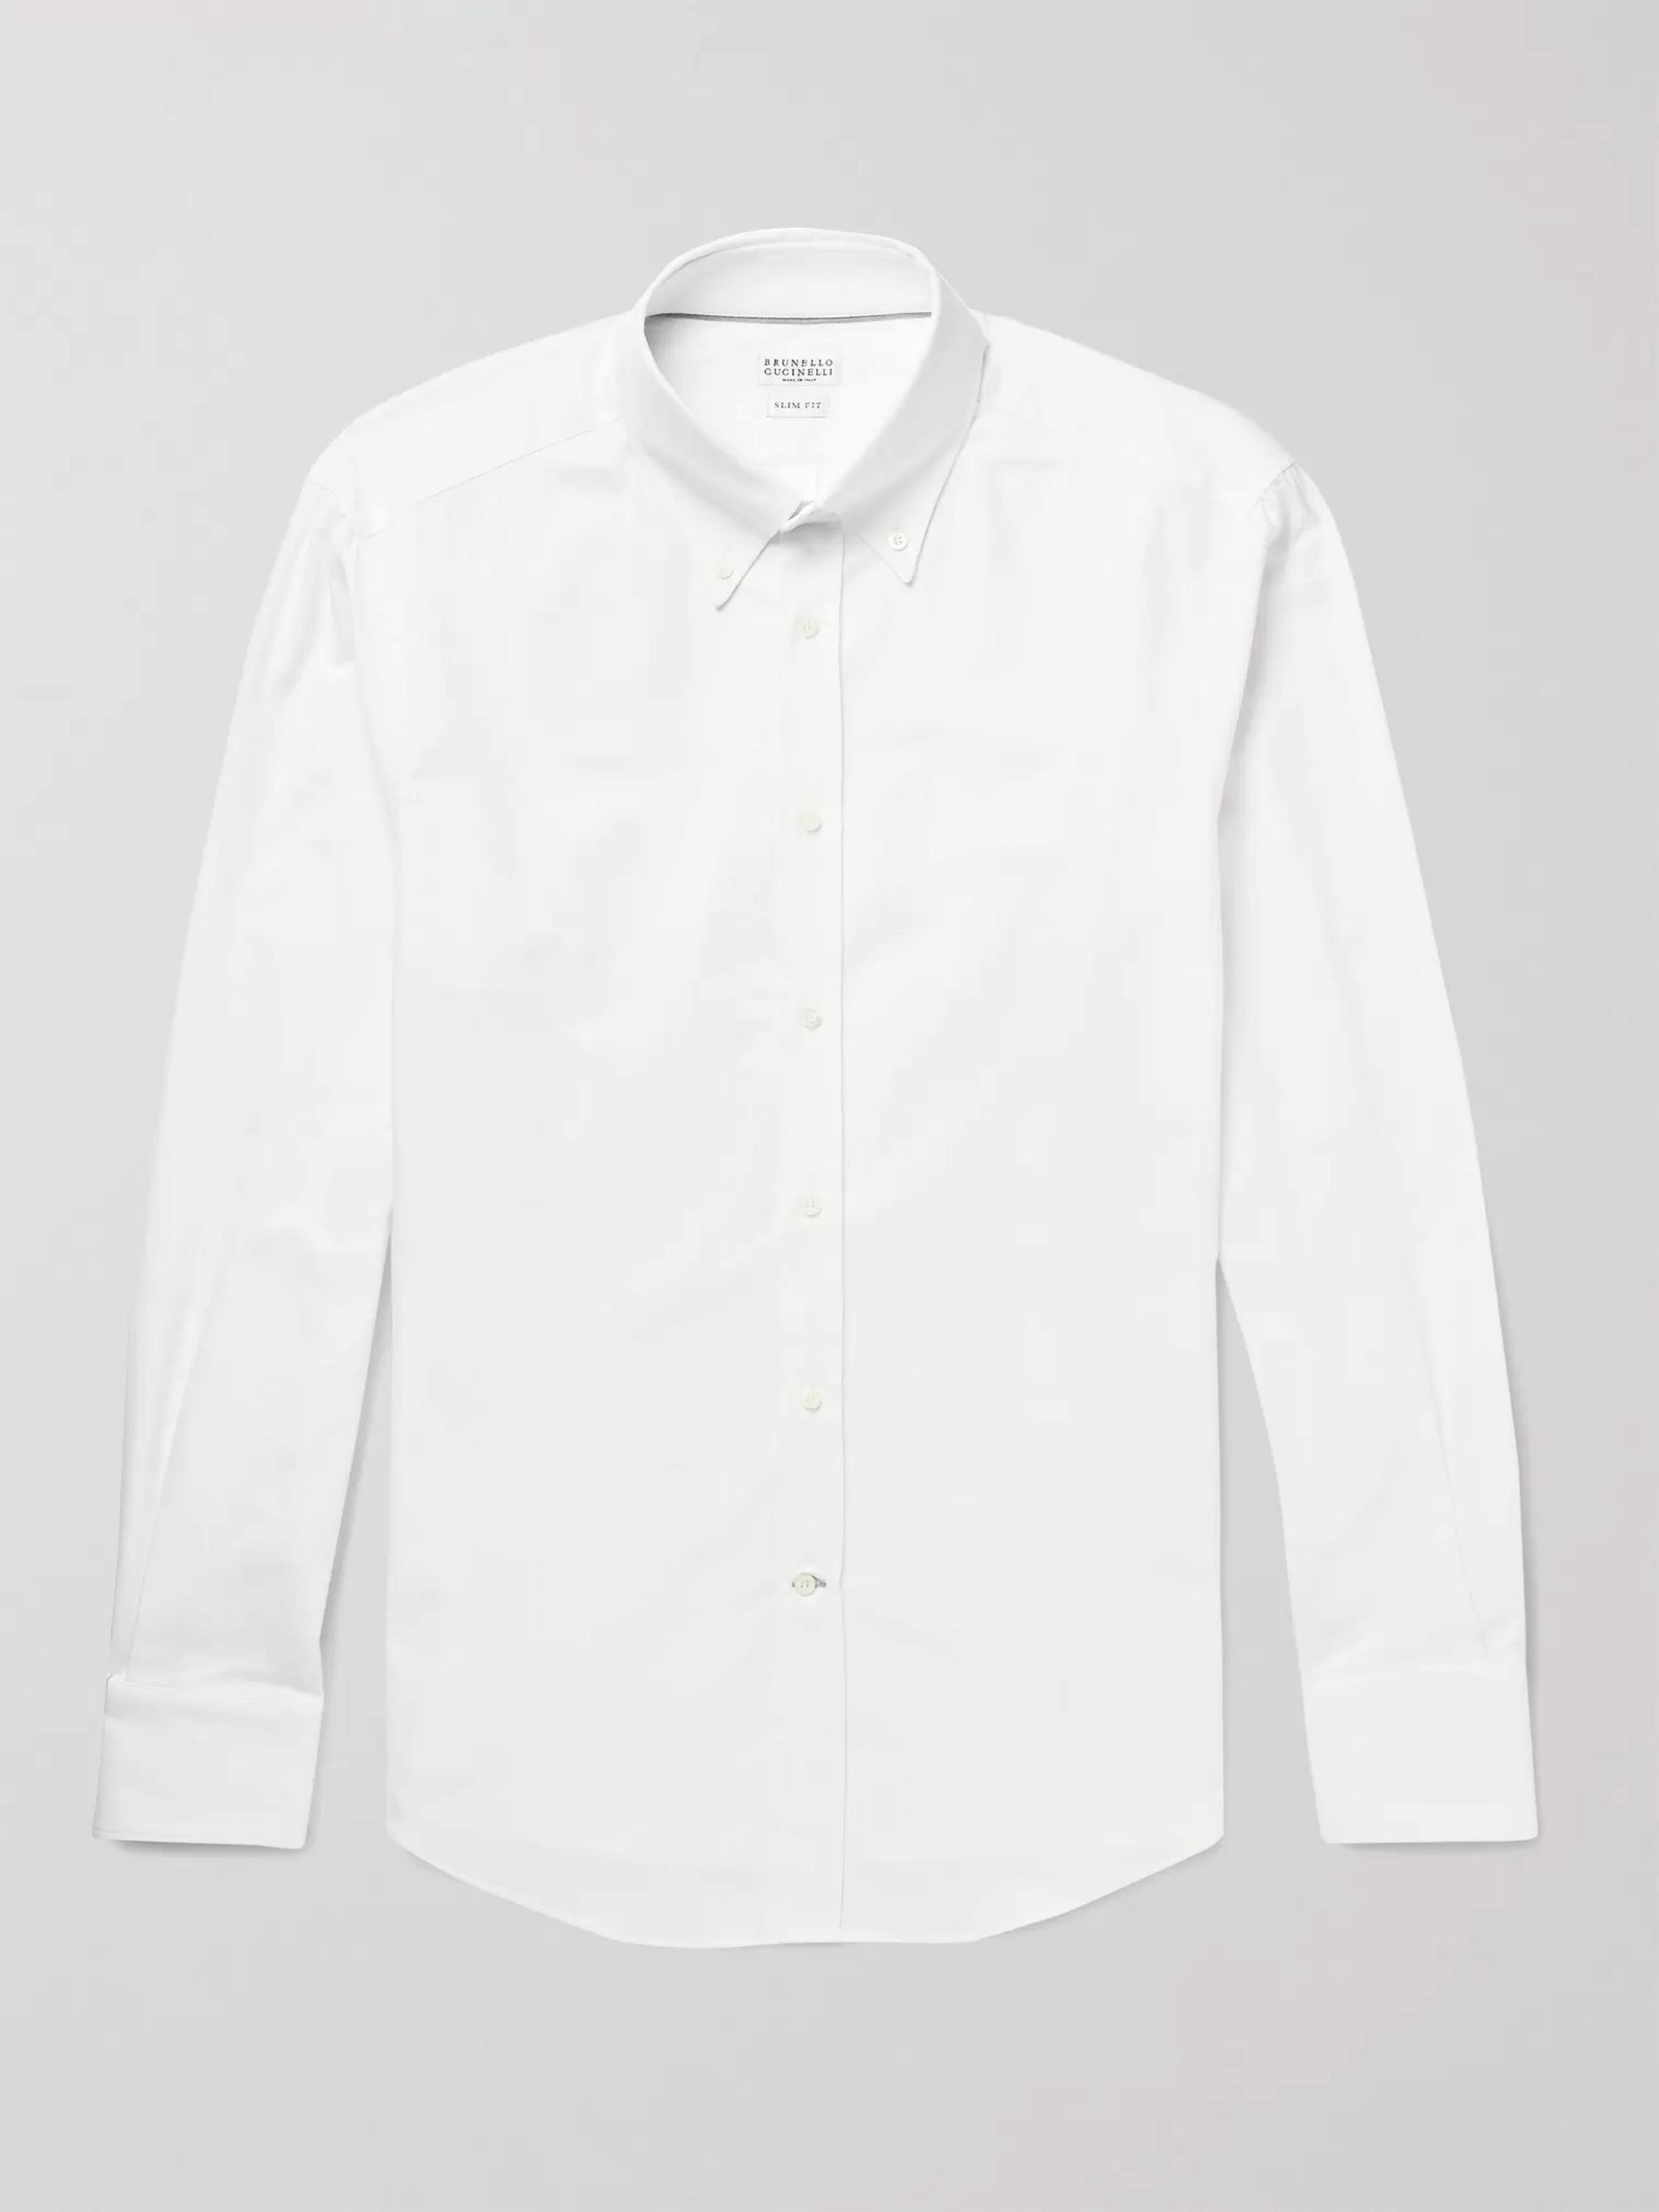 Brunello Cucinelli Button-Down Collar Cotton Shirt